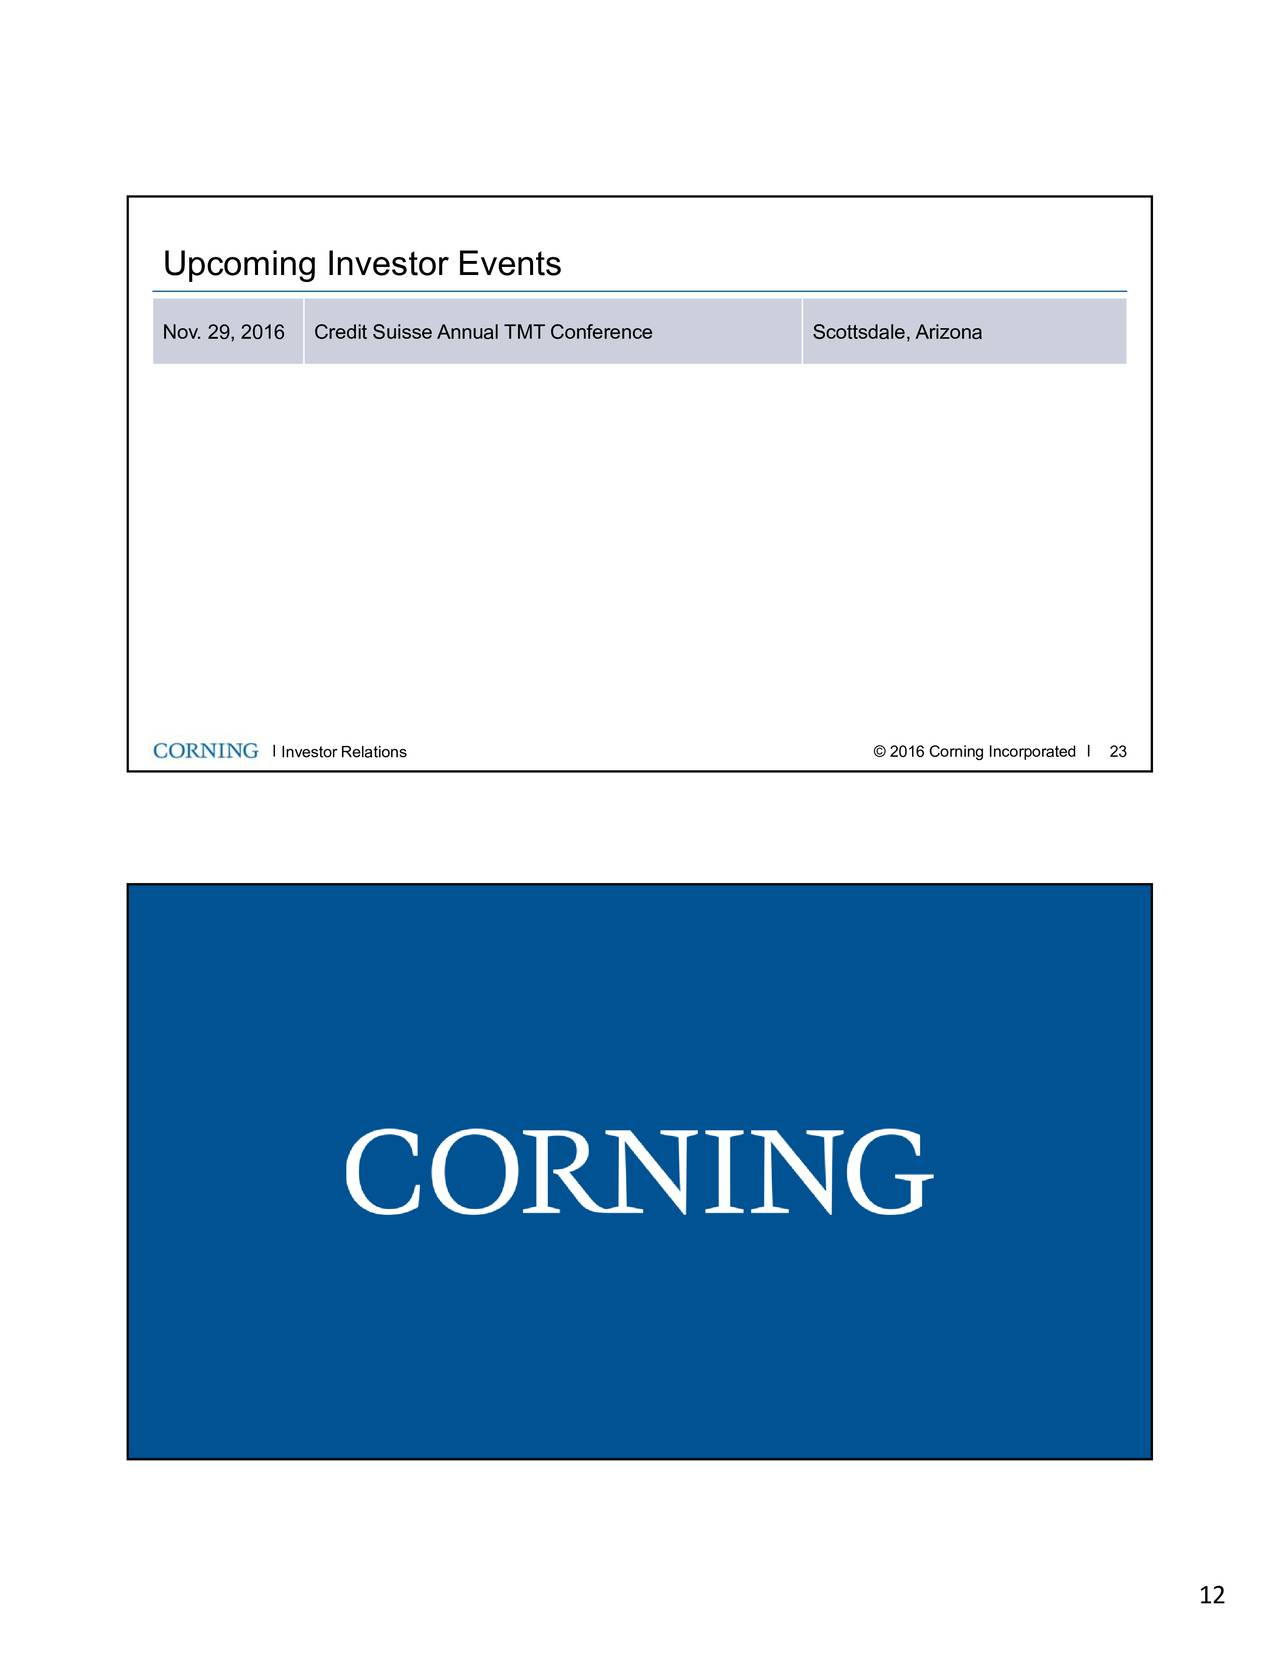 corning chat rooms | up to 40% off🔥 | ☀☀☀ weight loss motivation chat rooms ☀☀☀ the fat burning kitchen: special free bonus the advanced nutritional fat-burning blueprint – the 23-day accelerated fat loss.